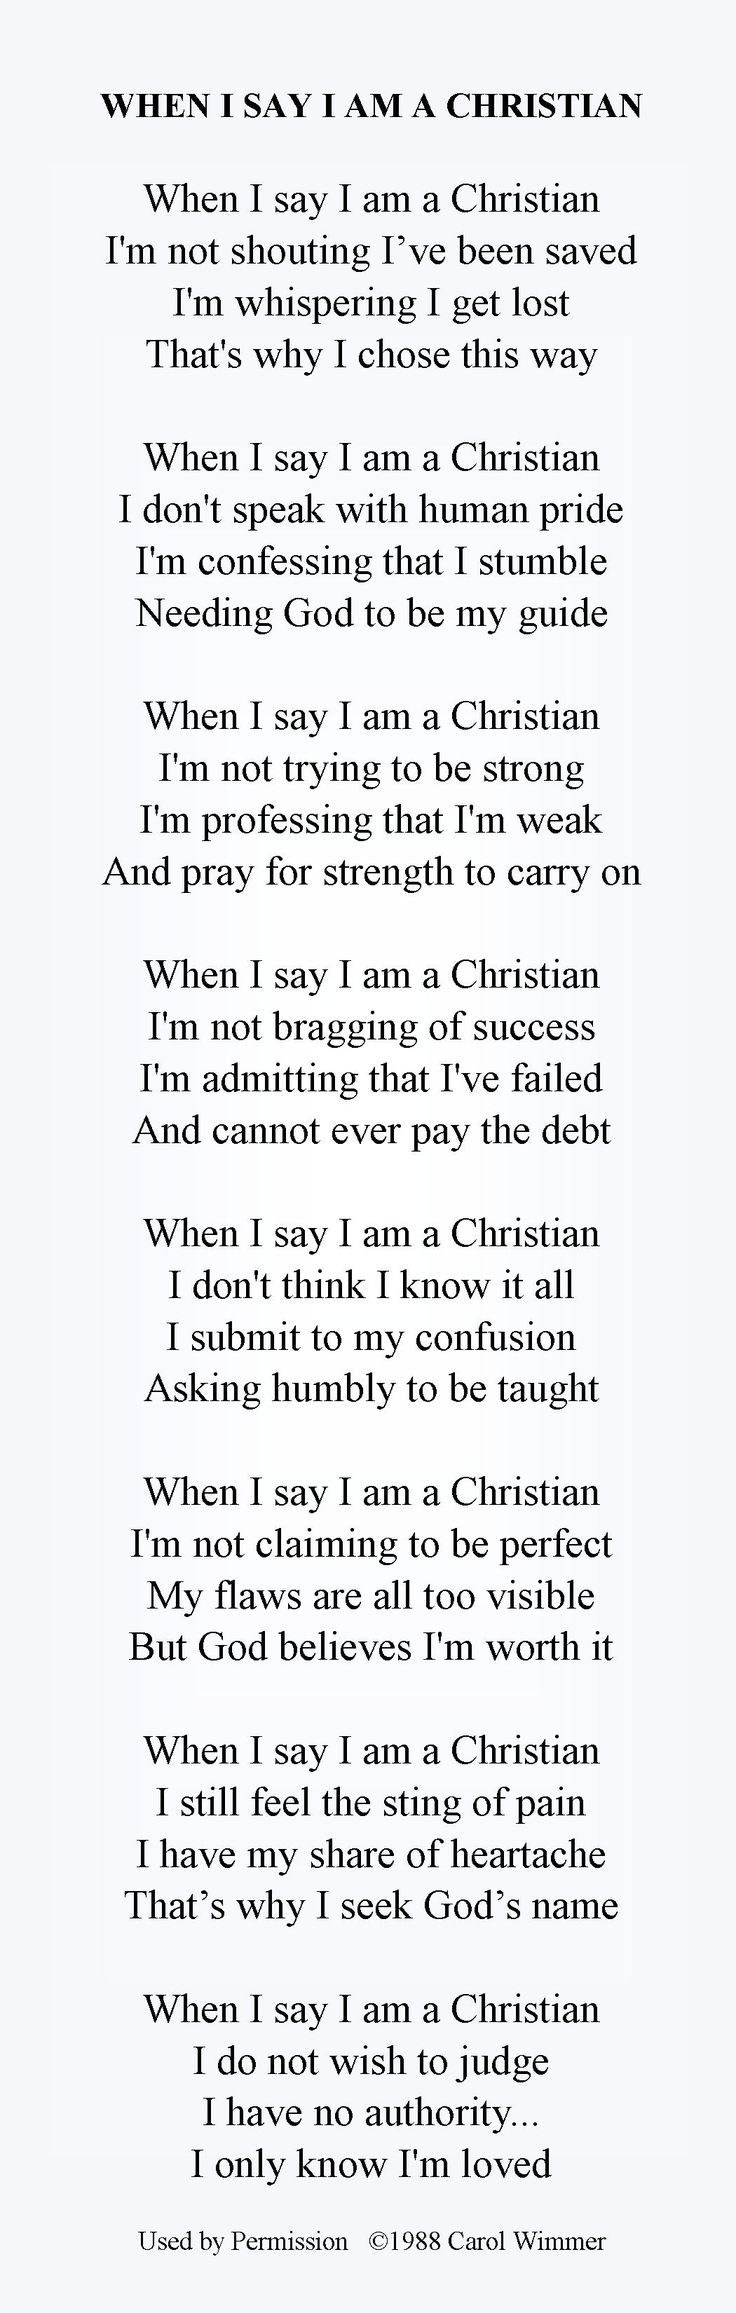 Christmas poems for church programs - When I Say I Am A Christian Poem Just Words On White